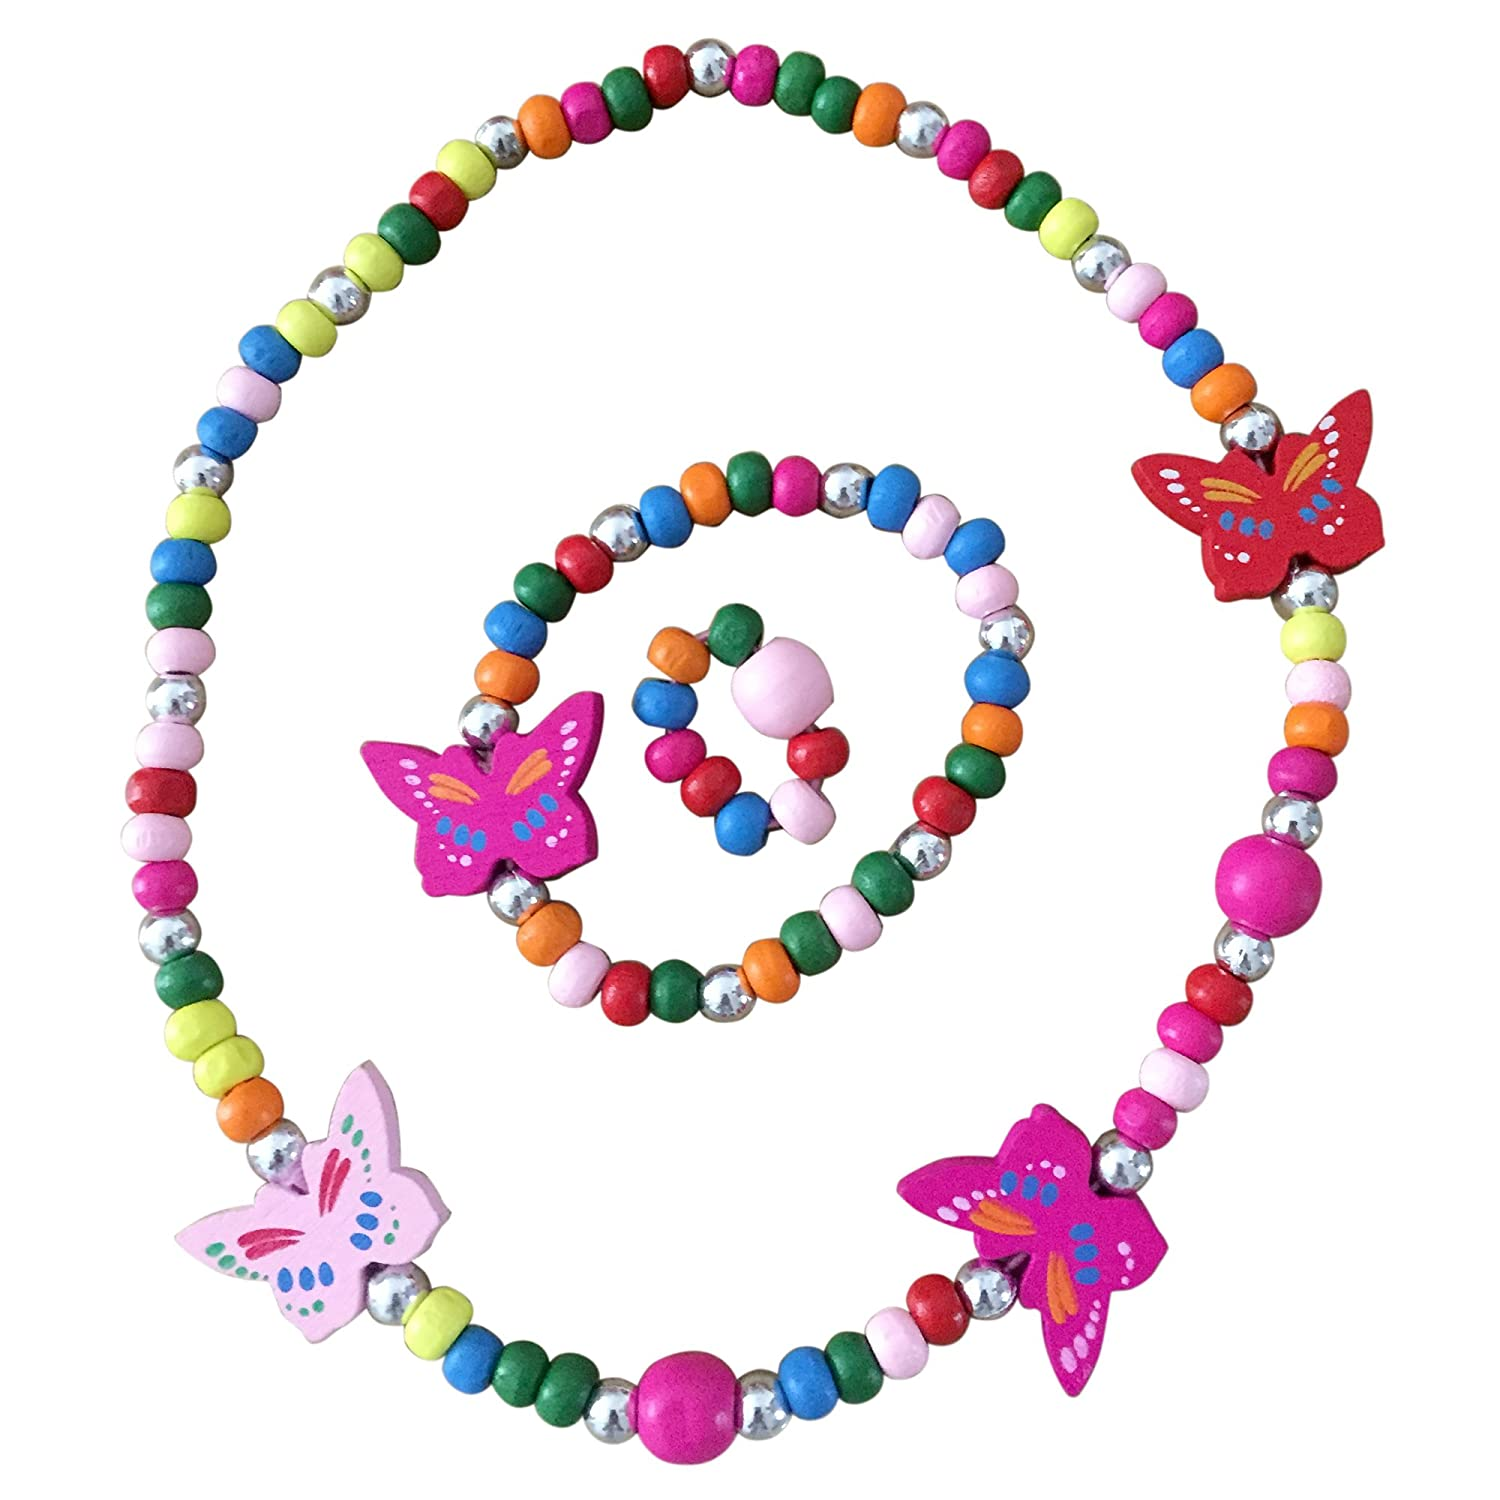 f0644c09f3fd0d SMITCO Kids Jewelry - Toddler Jewelry for Little Girls - Childrens Costume  Necklace